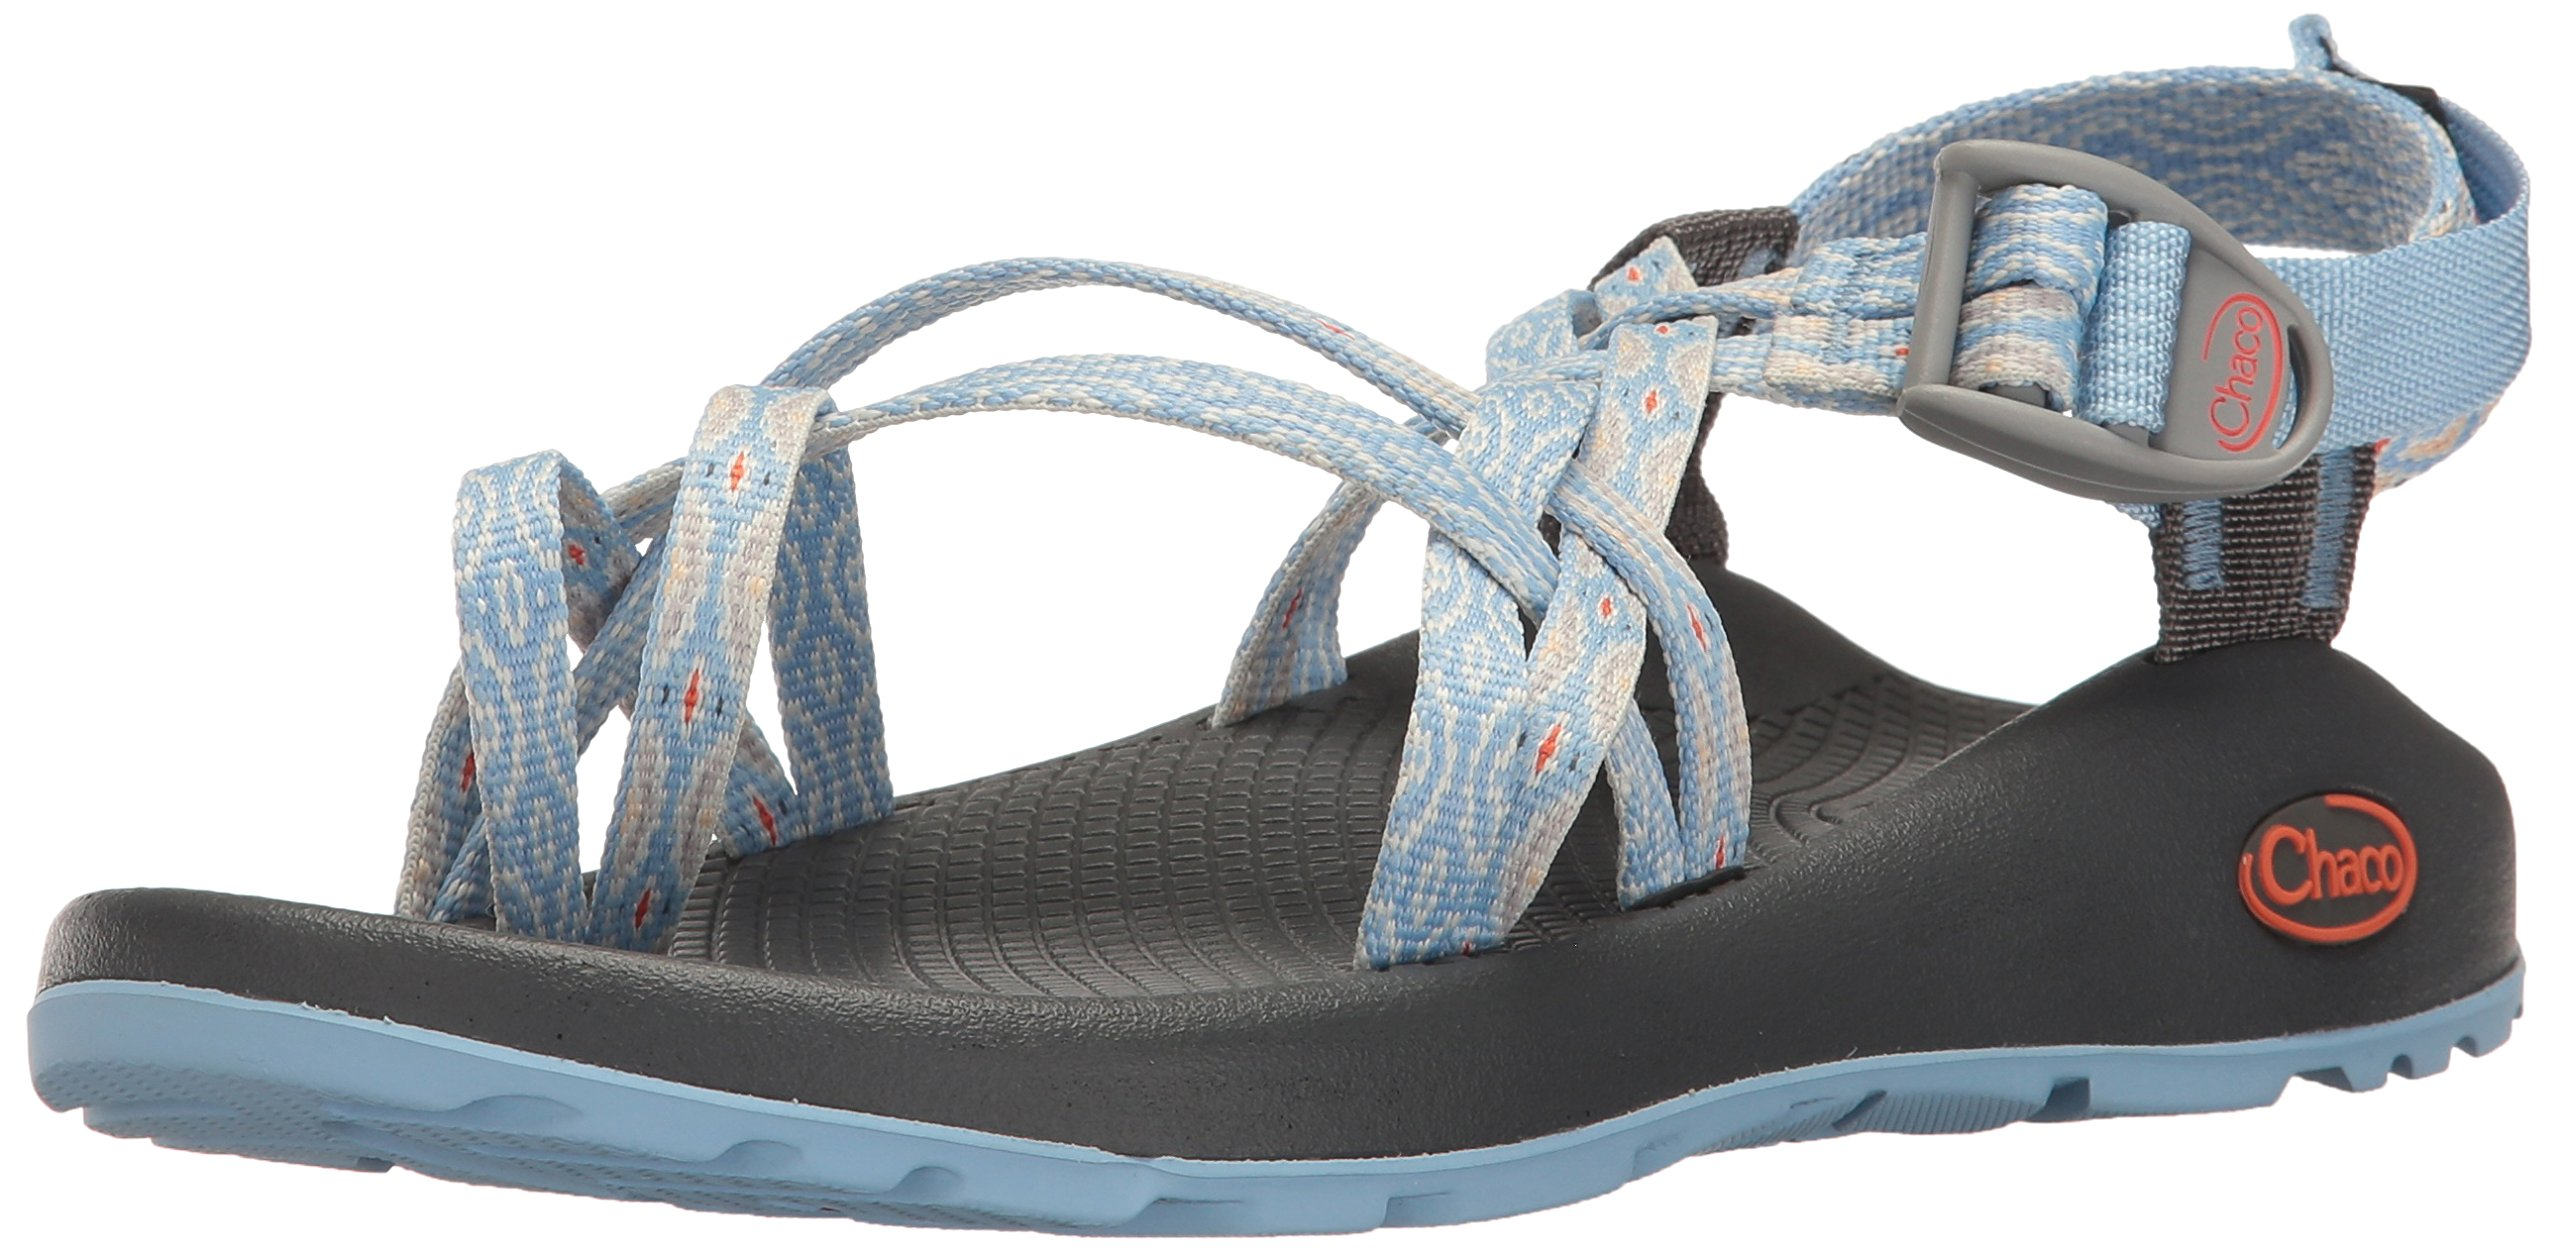 Chaco Women's ZX 2 Classic Athletic Sandal, Sphere Blue, 11 M US